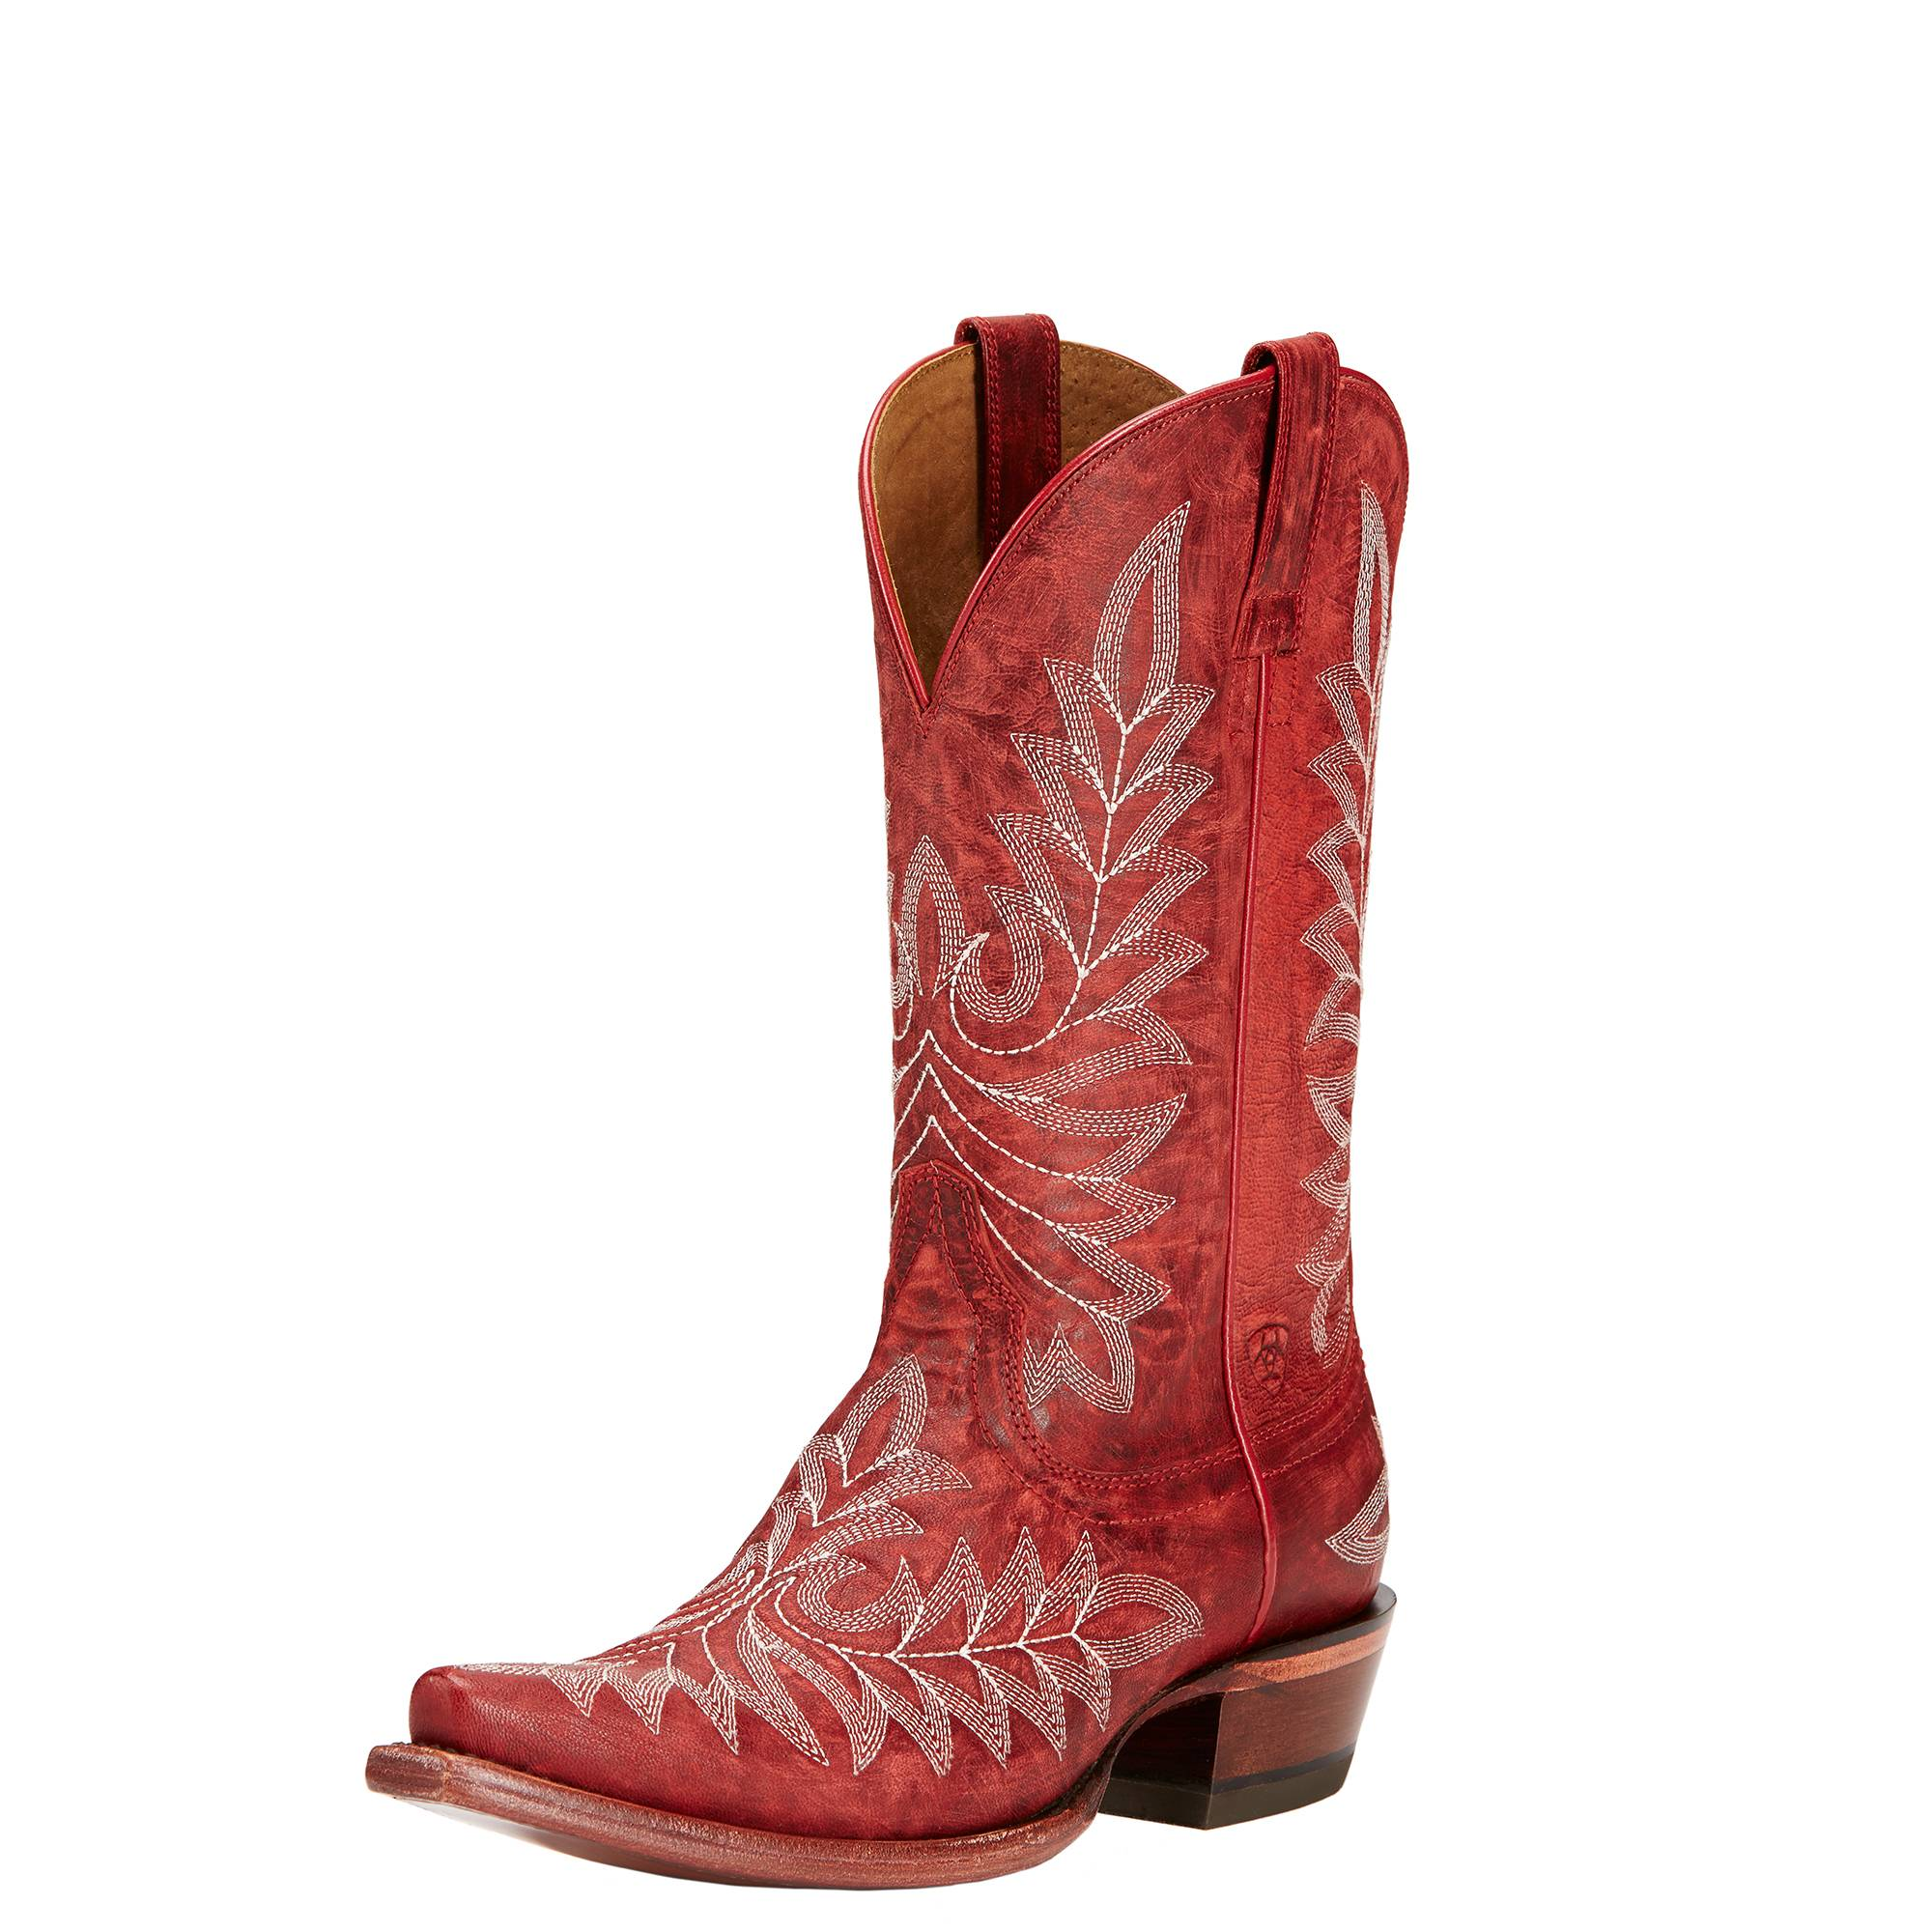 Ariat Brooklyn Boots - Ladies - Revel Red